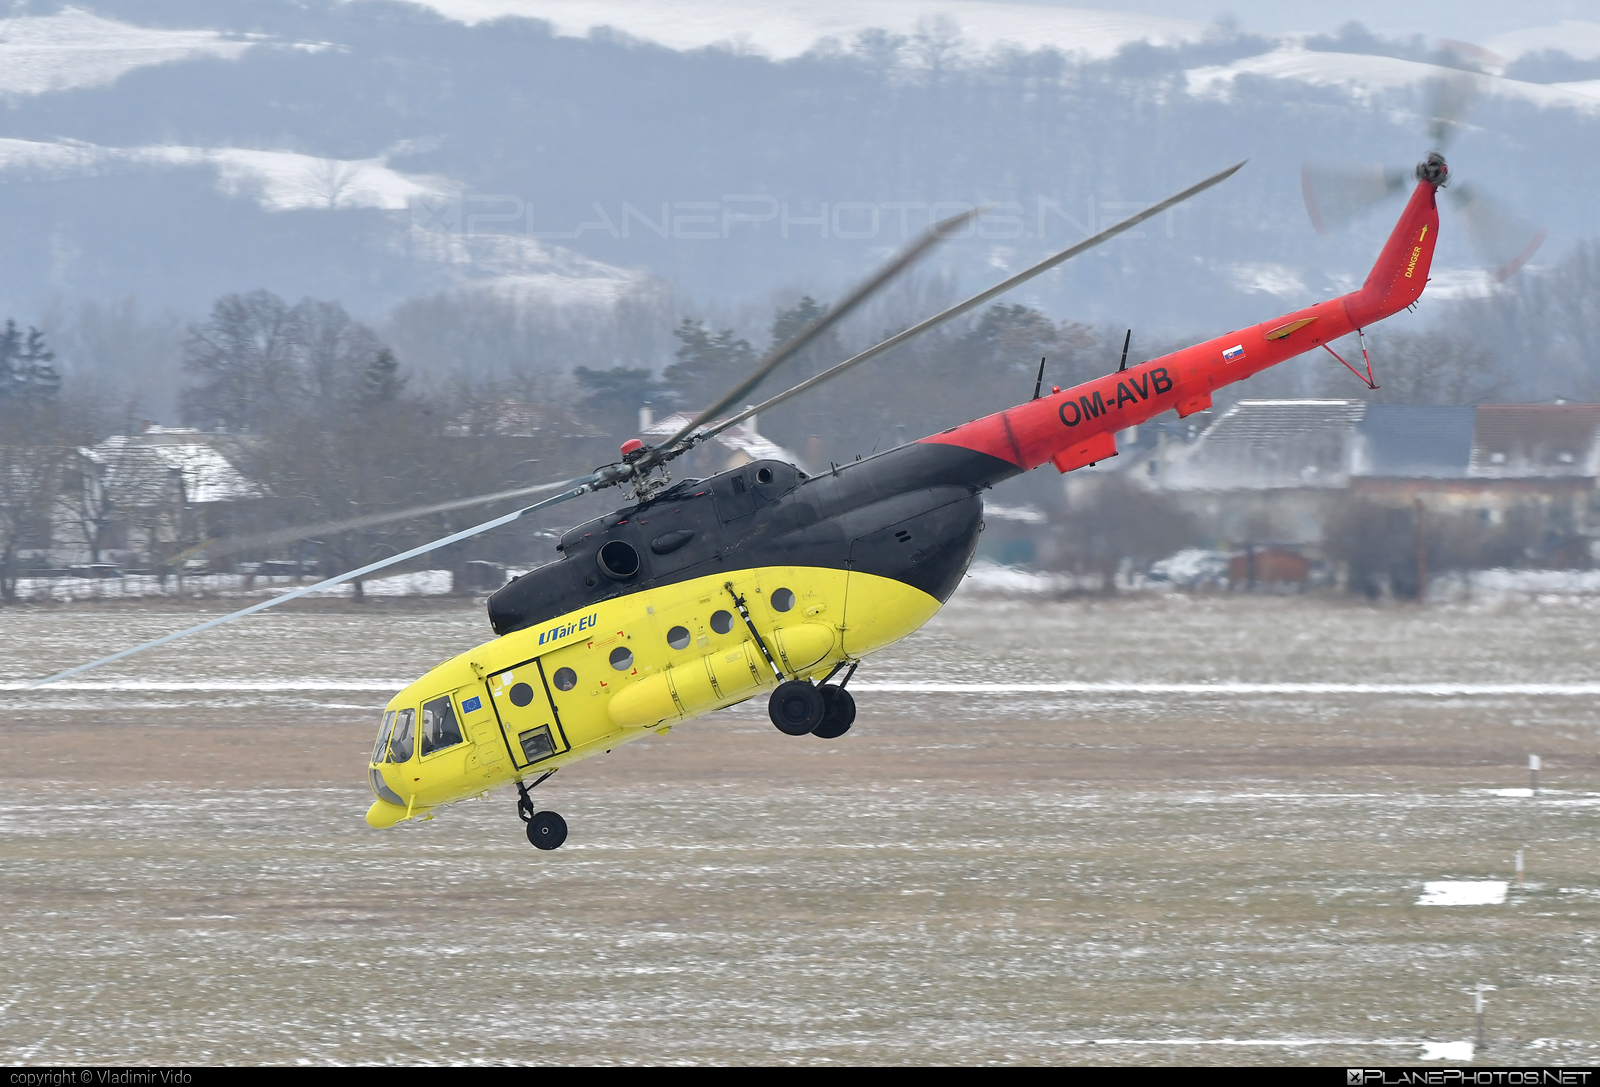 Mil Mi-8MTV-1 - OM-AVB operated by UTair Europe #mil #milhelicopters #utair #utaireurope